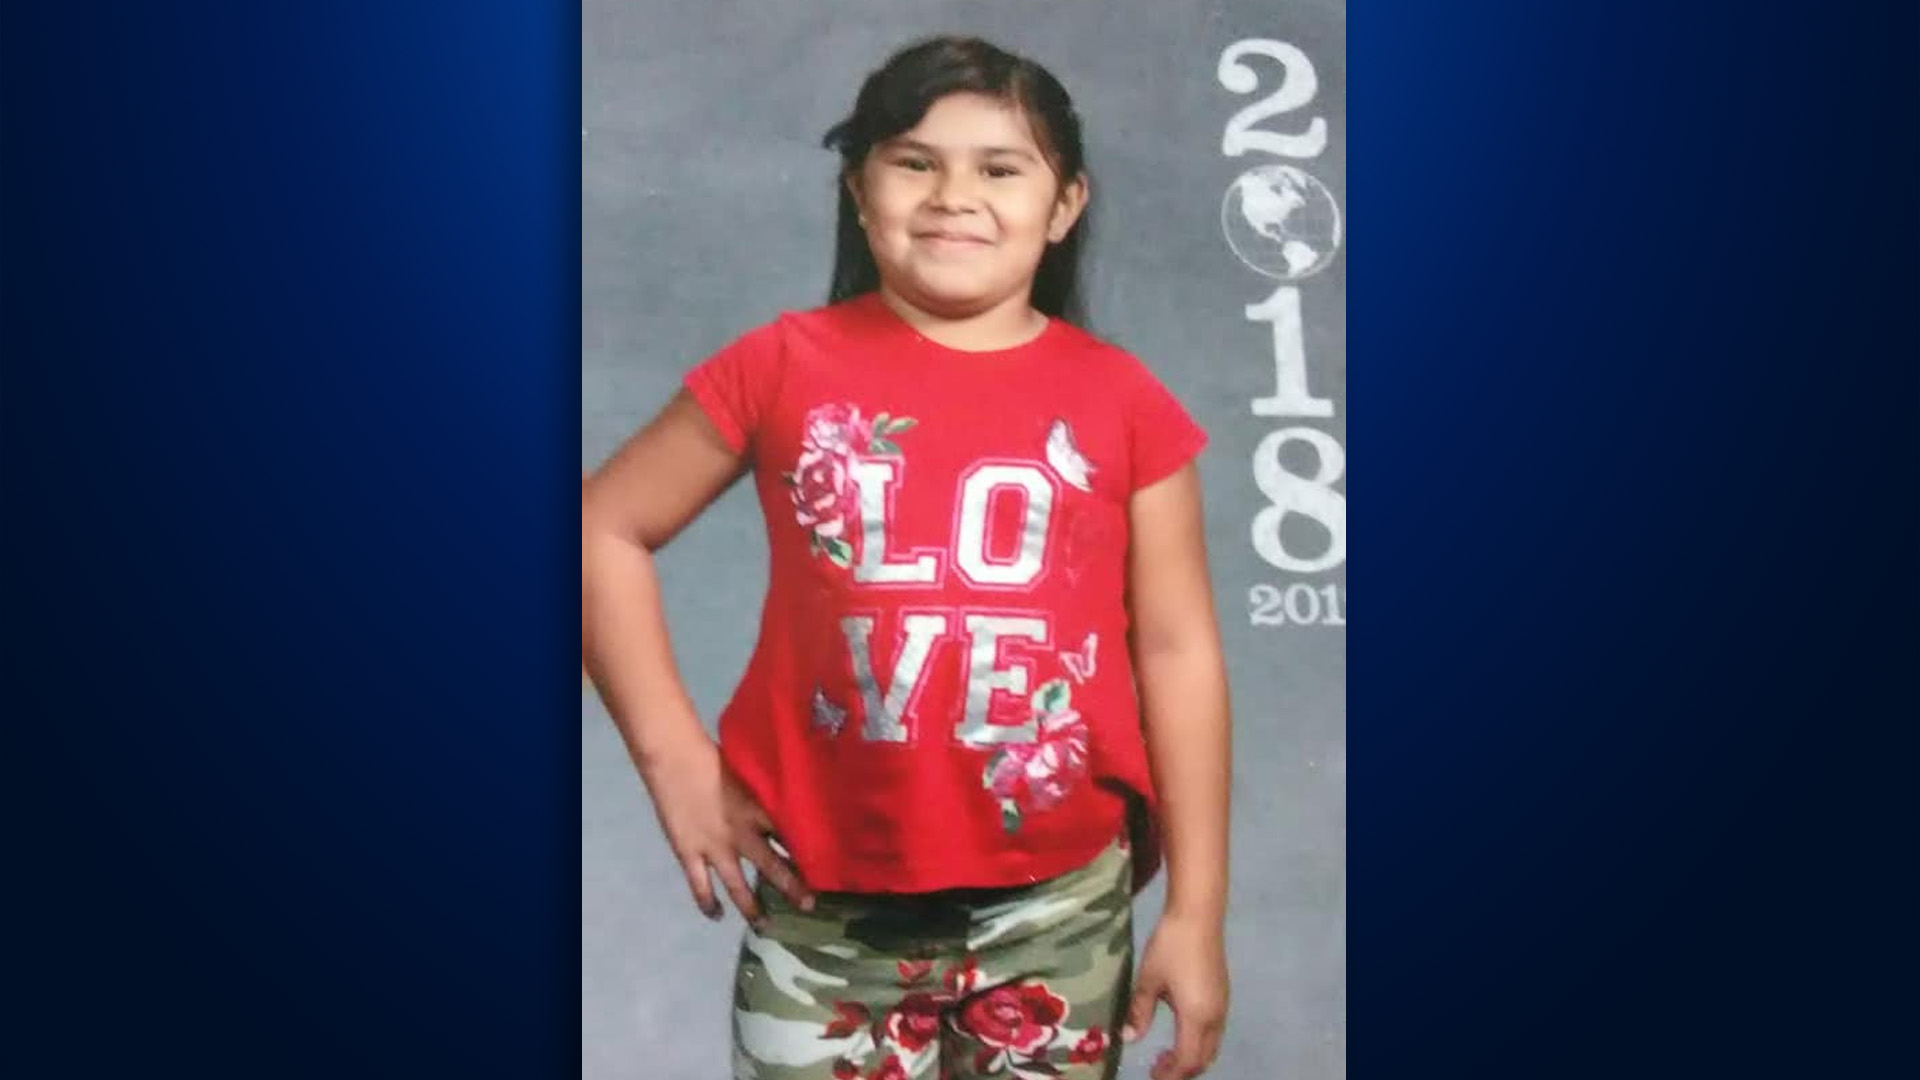 KELO Aylani Rainbow missing girl Marty Indian School